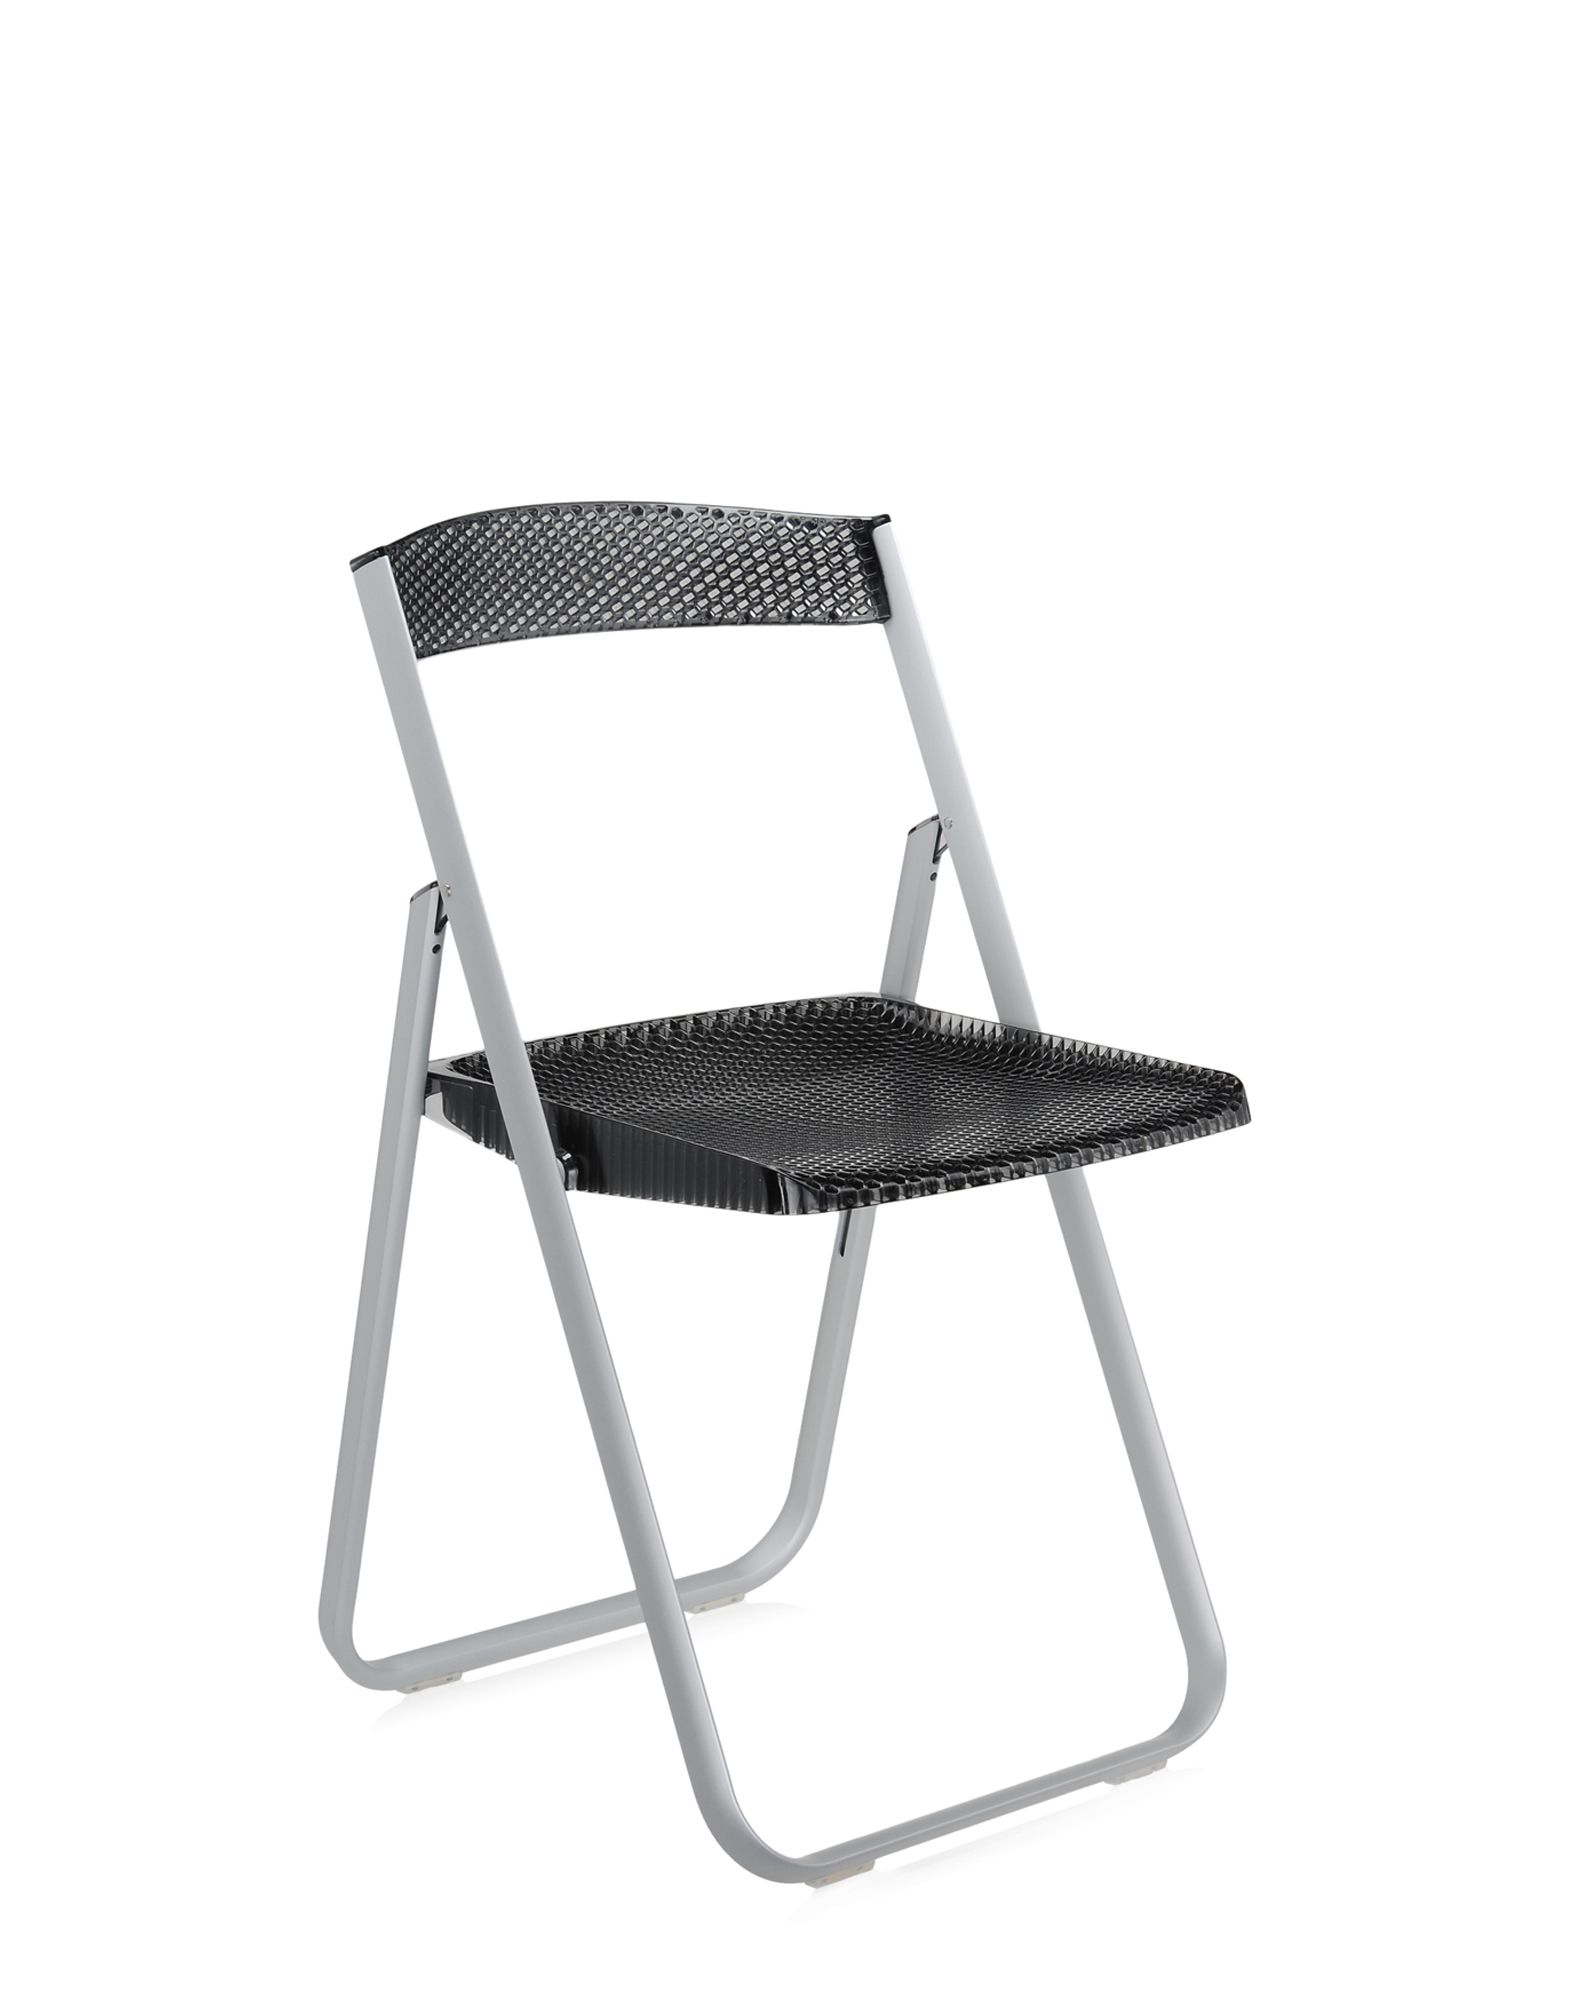 Kartell folding chair honey comb fume' transparent